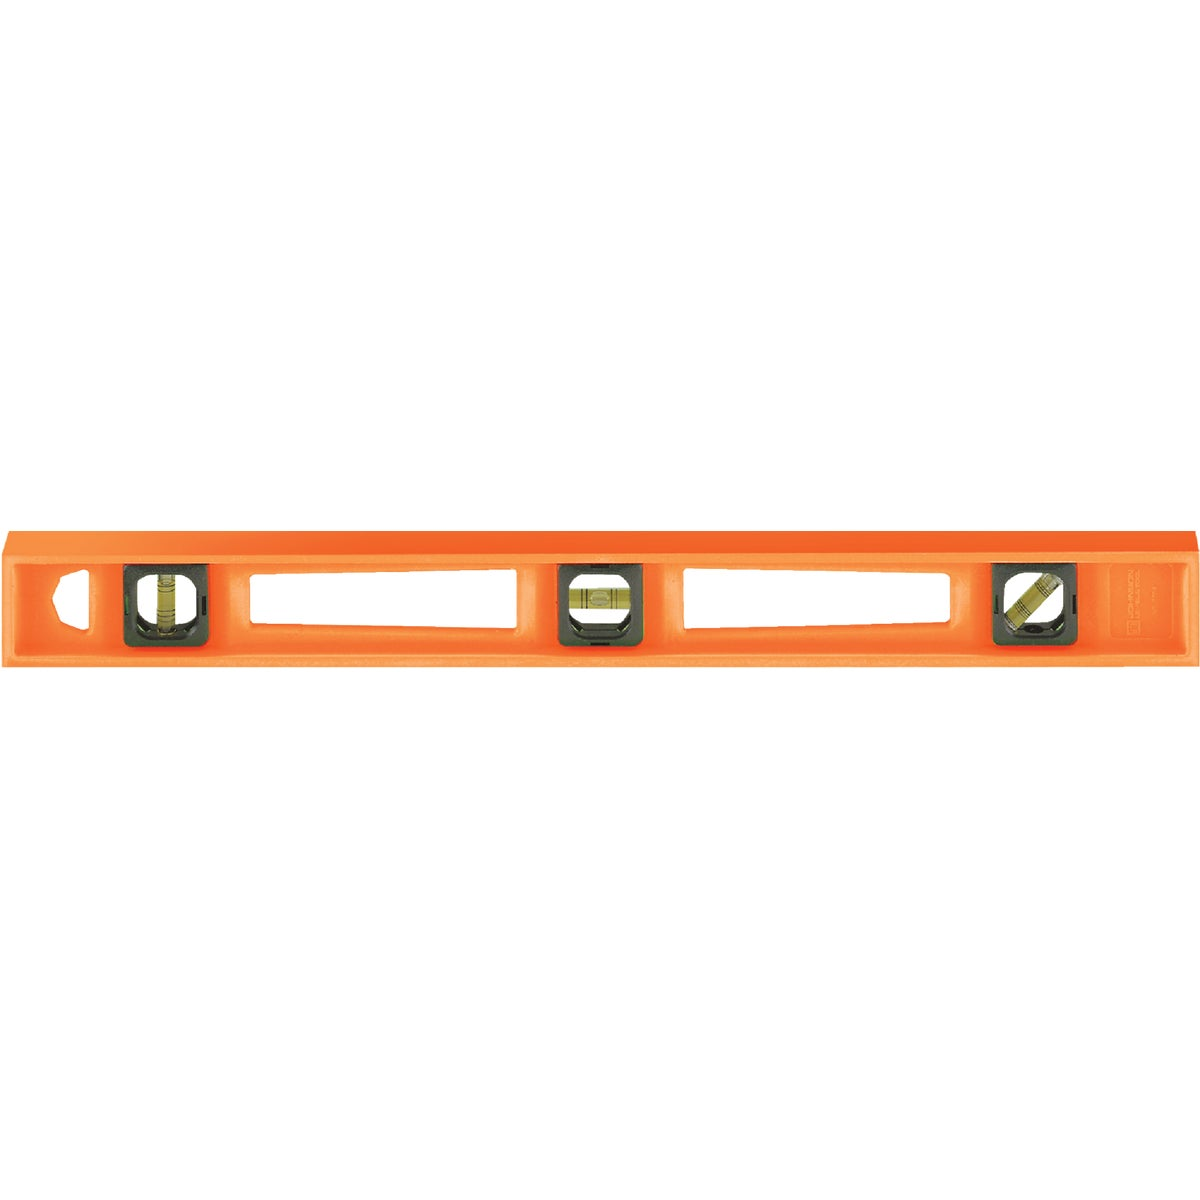 "24"" STRUCTO-CAST LEVEL - 7724-O by Johnson Level & Tool"